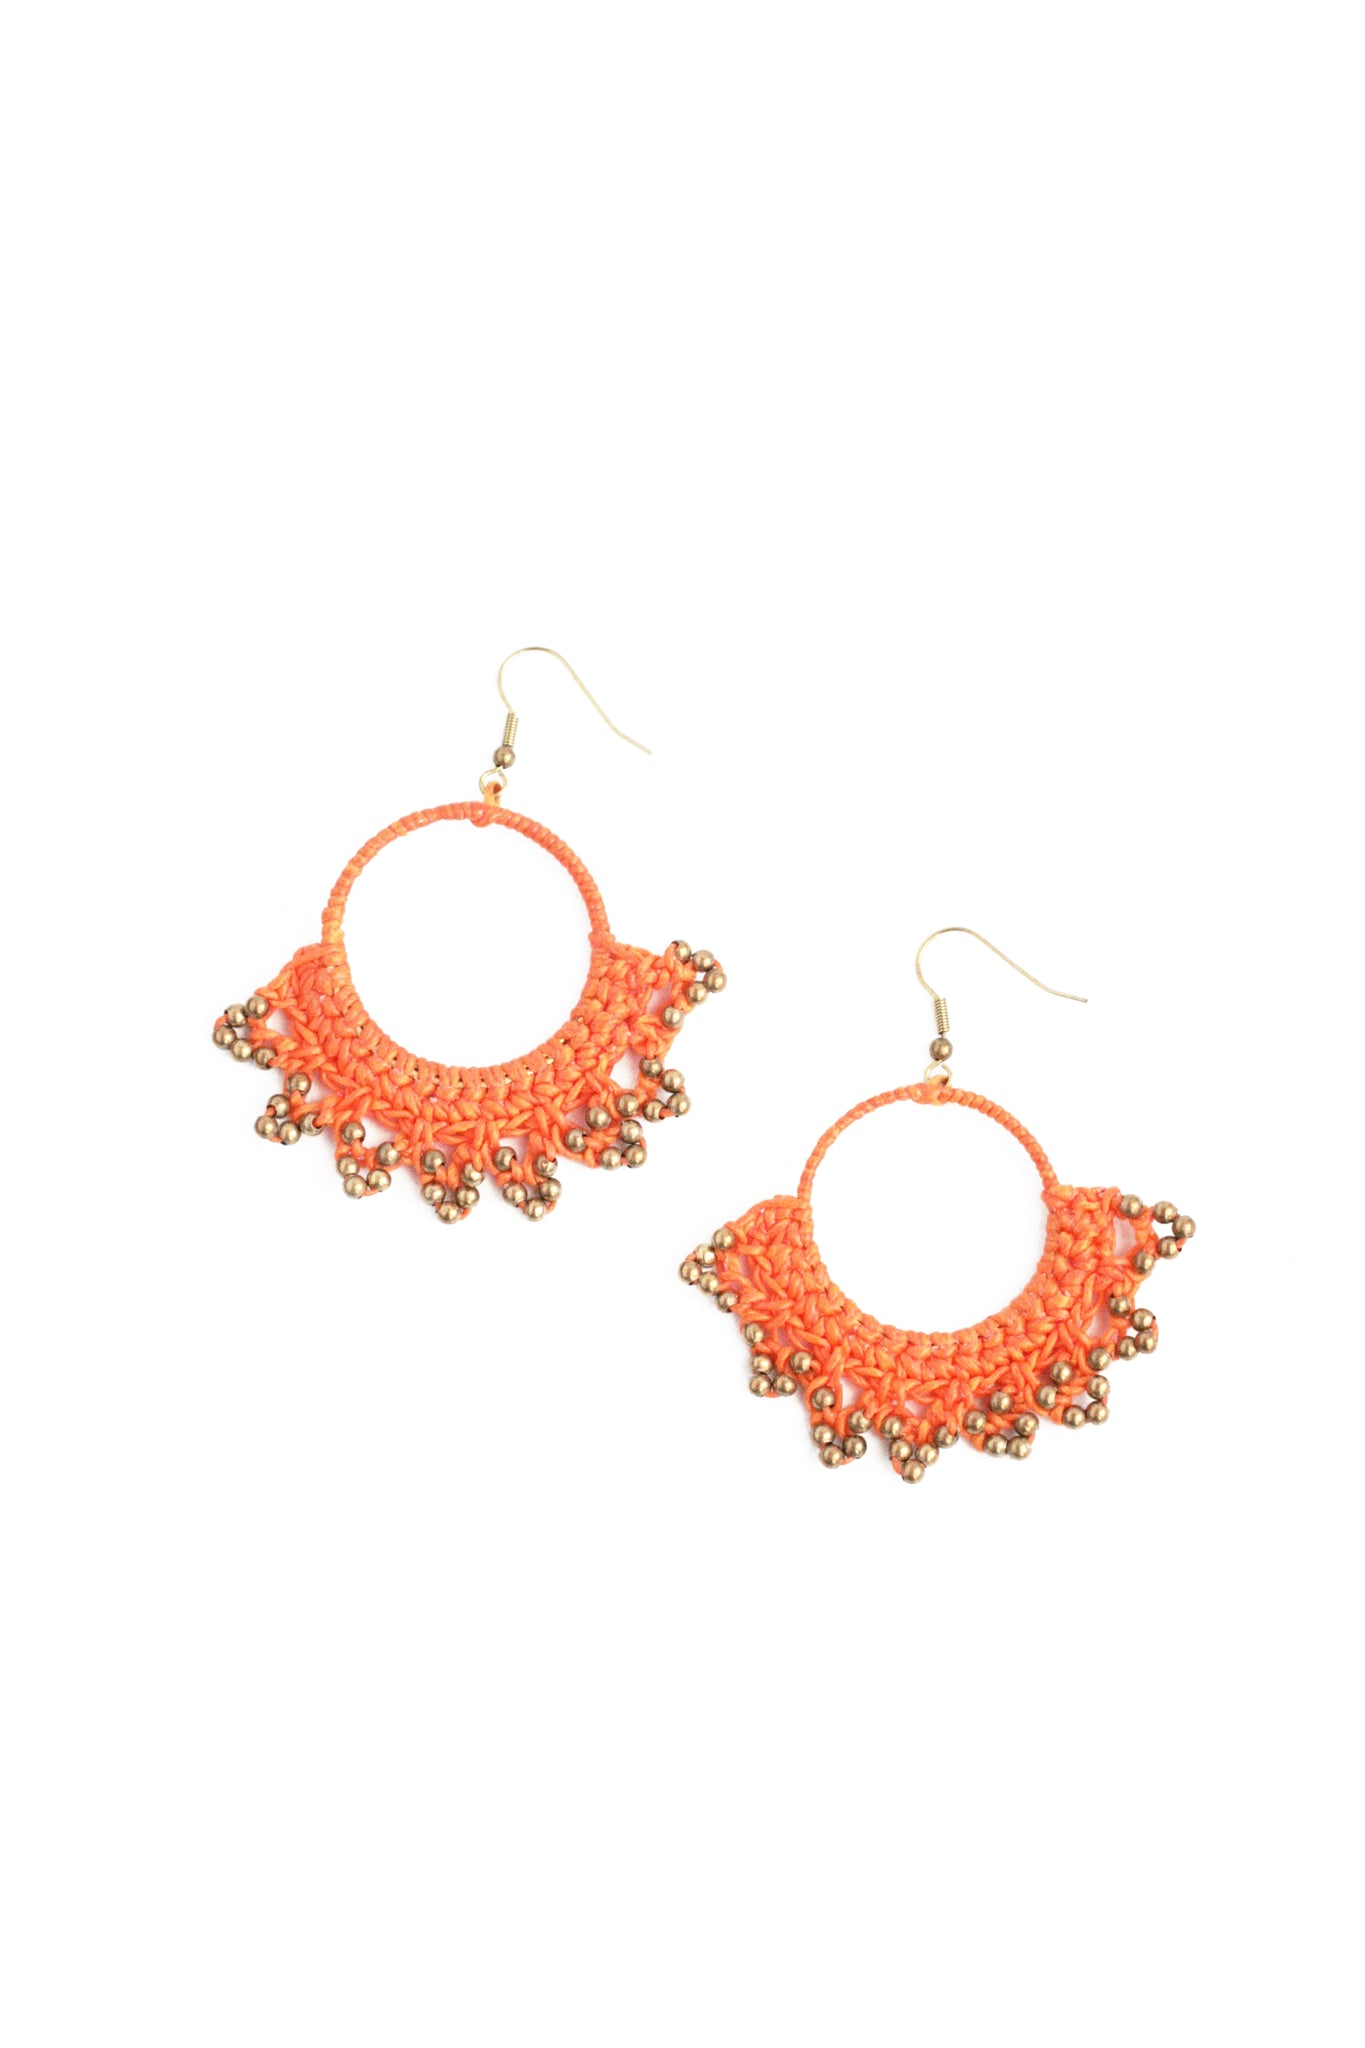 Crochet Wax Cord Earrings - Orange